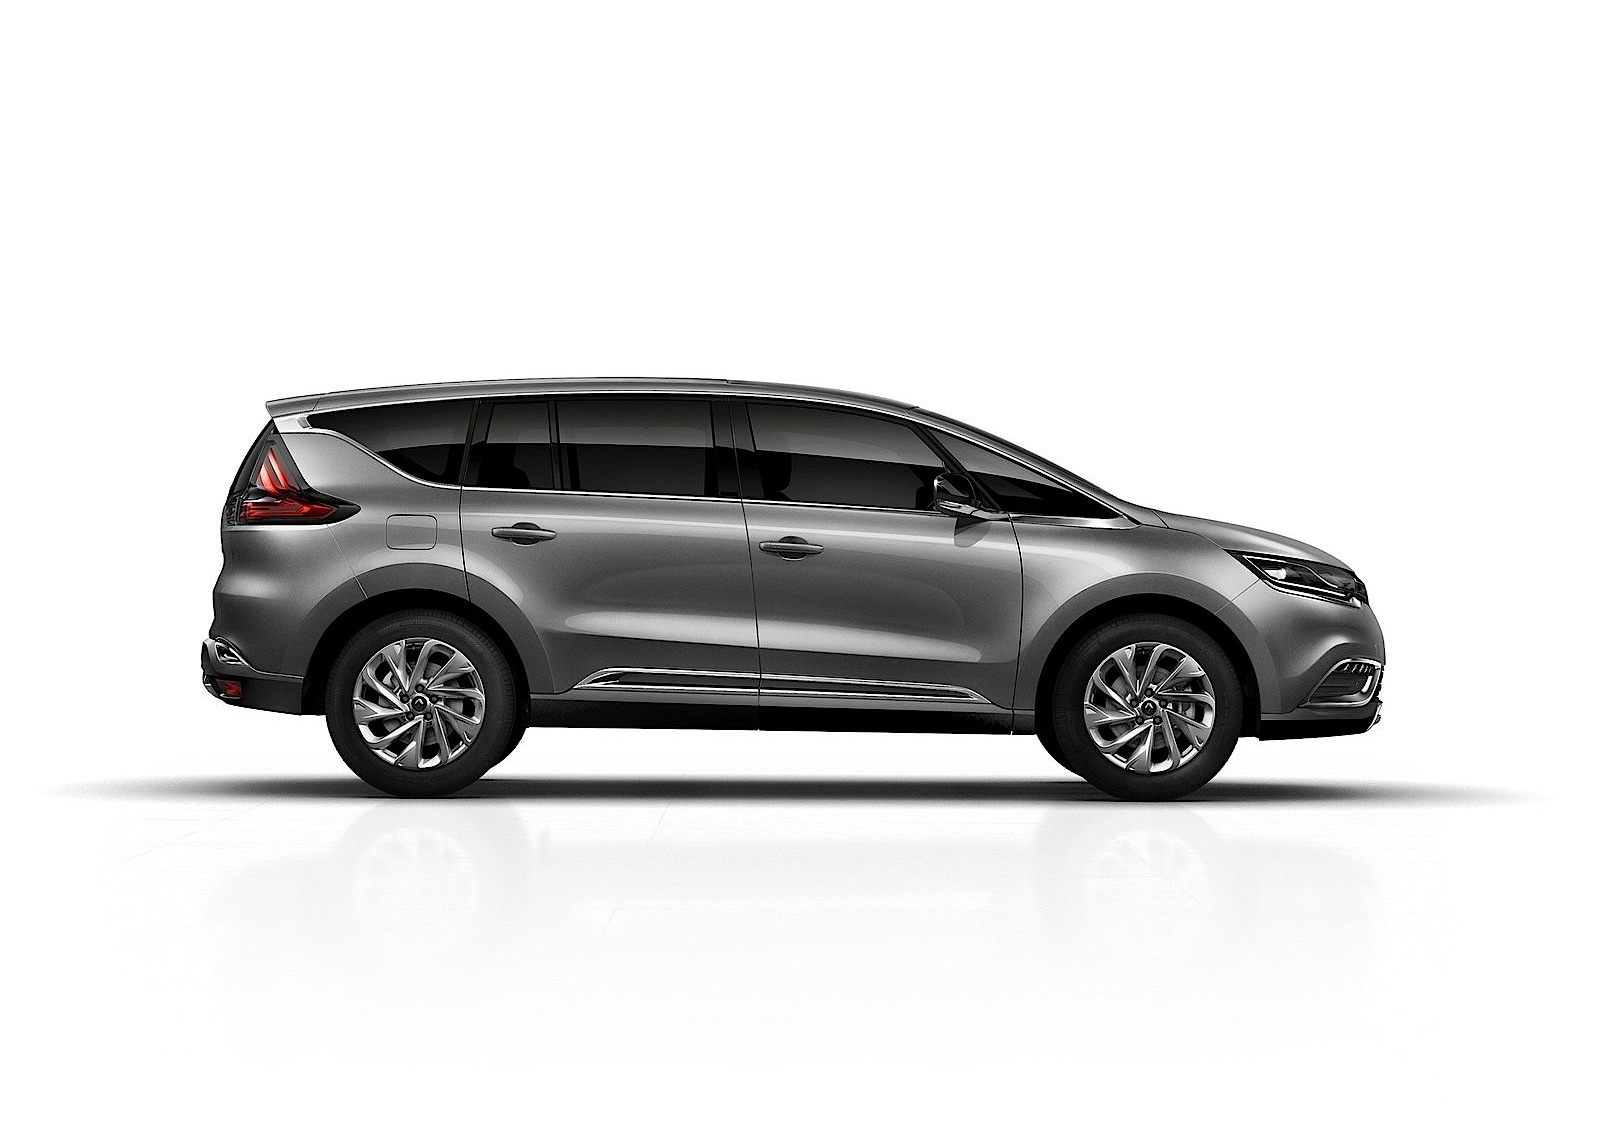 renault espace specs 2014 2015 2016 2017 2018 autoevolution. Black Bedroom Furniture Sets. Home Design Ideas